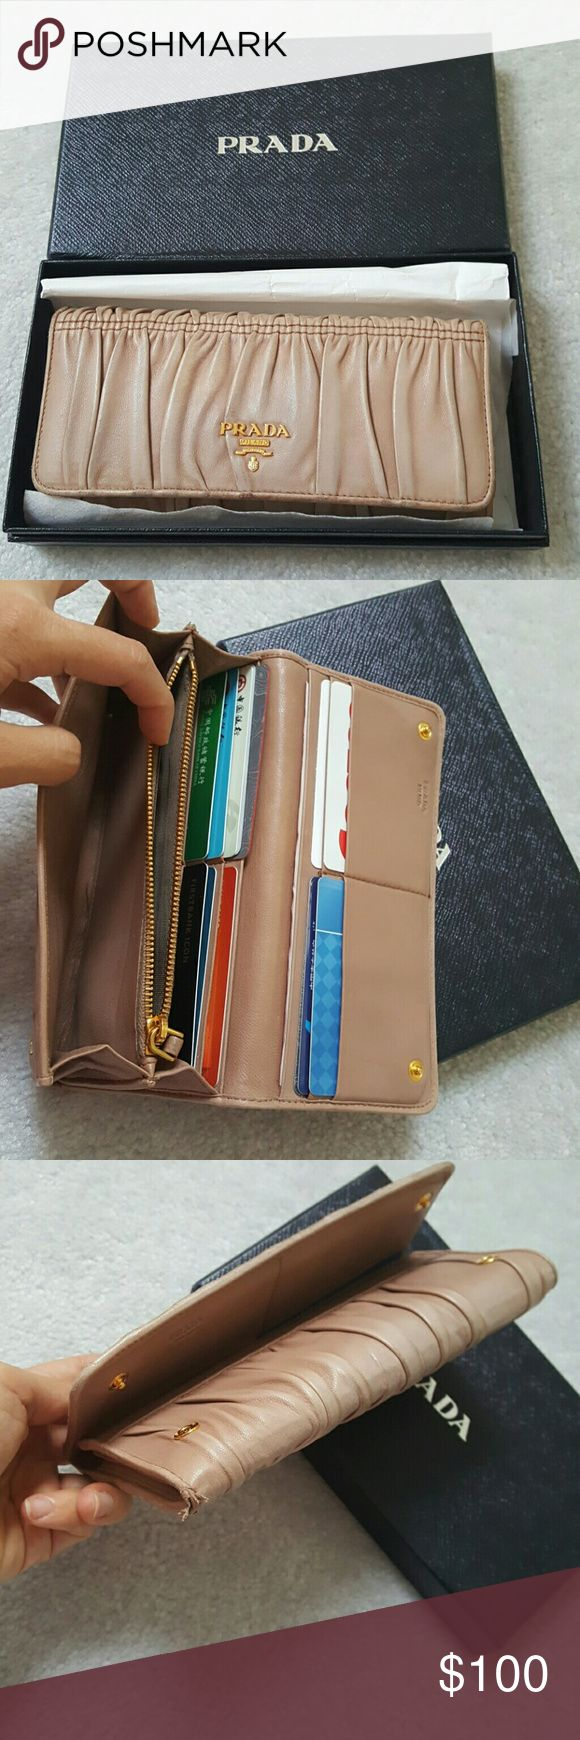 Used Authentic Prada Leather Beige Wallet Purse Used but in good condition. As shown in the pictures, the edge has been worn out , other than that, every thing is in good shape and conditions. Authentic Certified Prada wallet. Price is not negotiable. Prada Bags Wallets